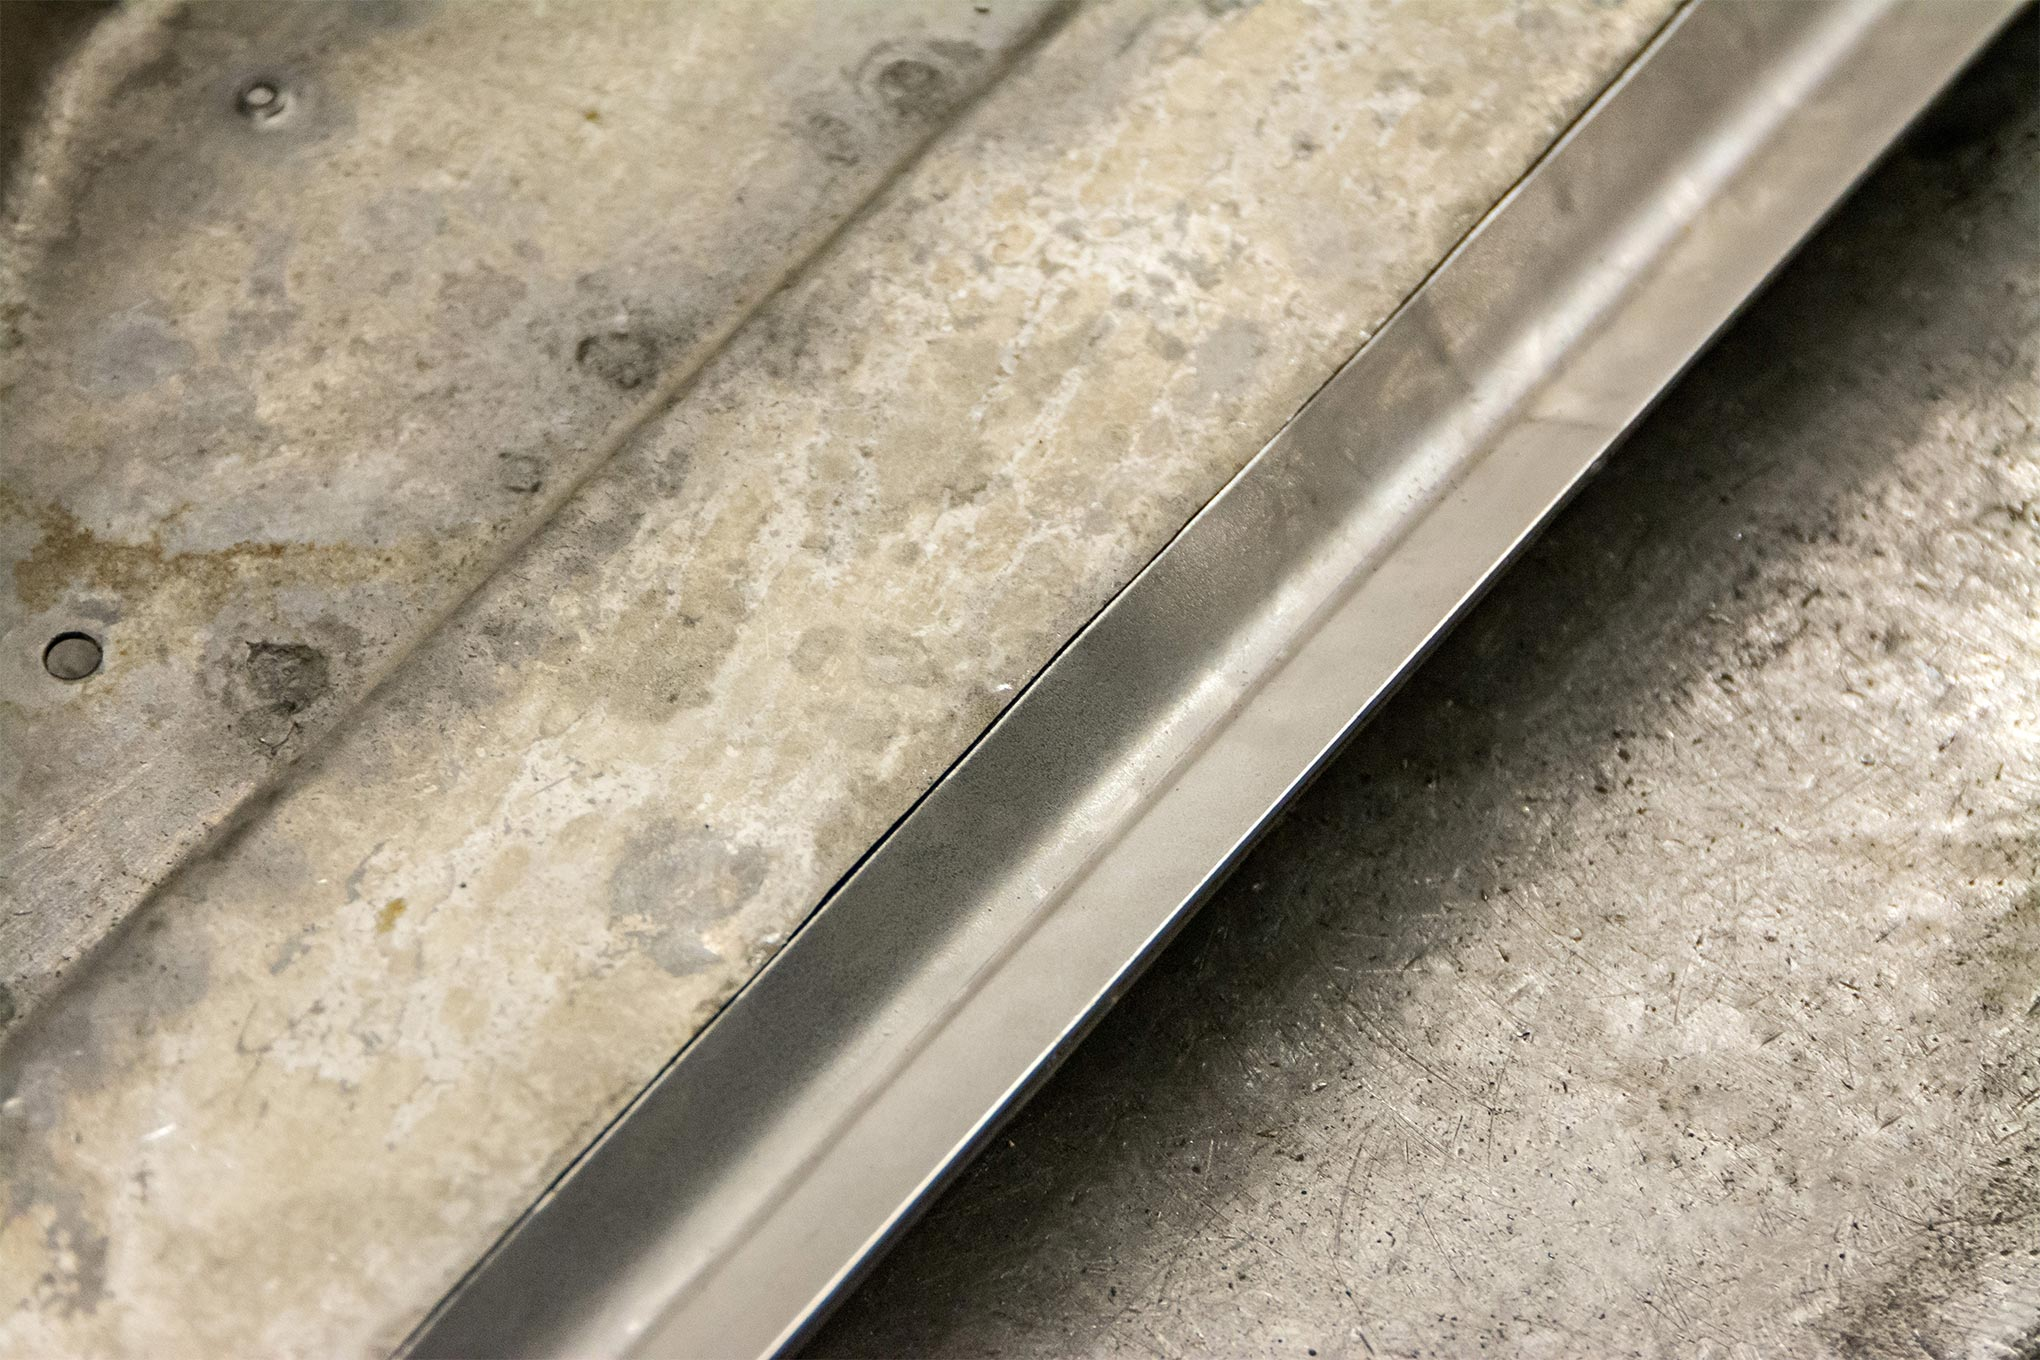 The initial test fit looks pretty good. Notice that the bend radius matches the bend in the original part. This is why it's important to bend a straight piece using a metal break. That way the radius is consistent along the entire part, even through the bend made with the shrinker.